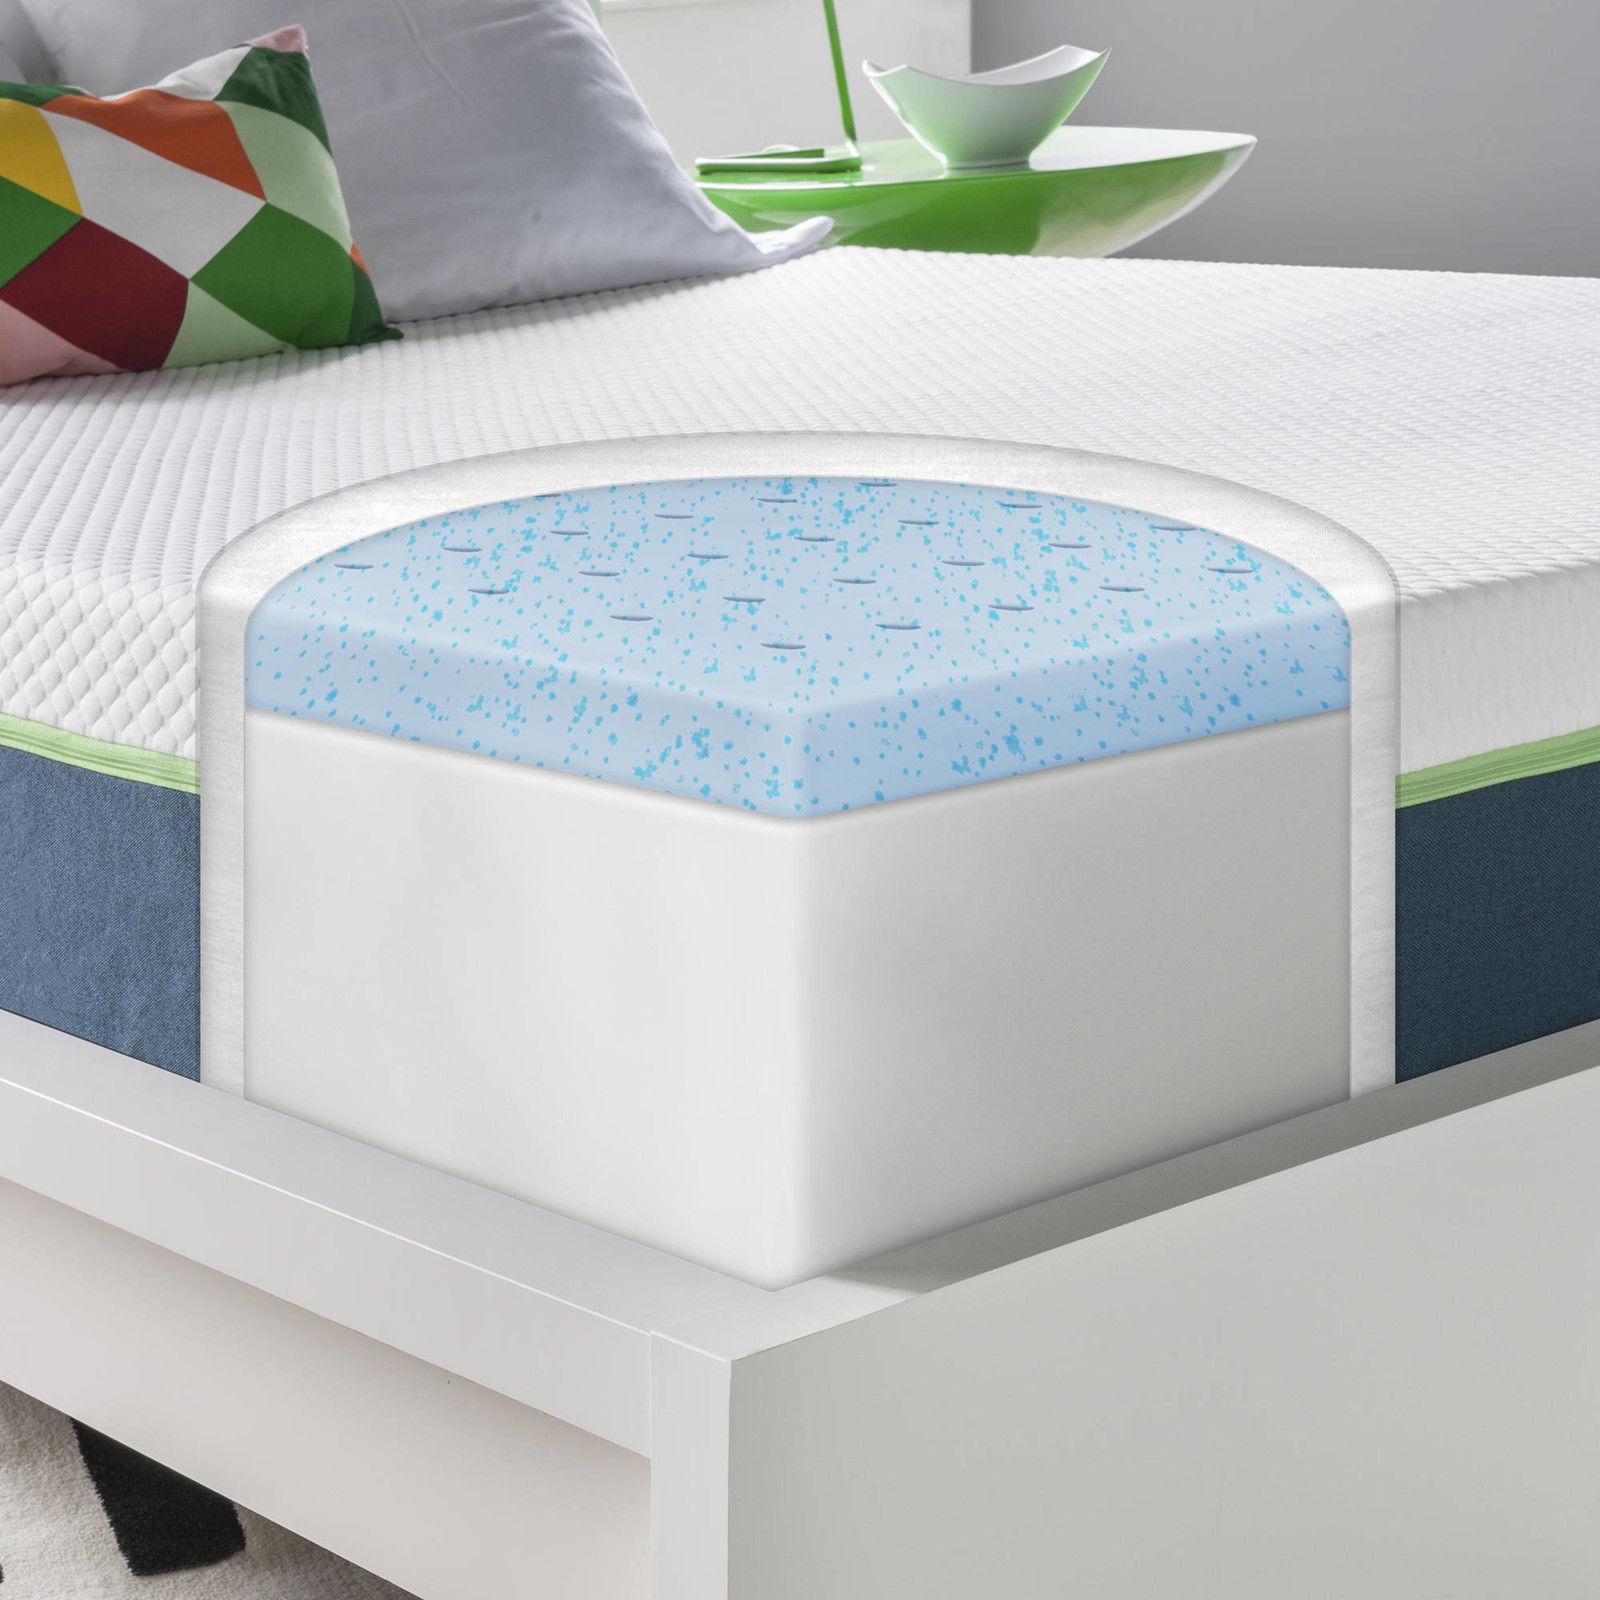 10 Deluxe Foam Bed Topper Twin Size